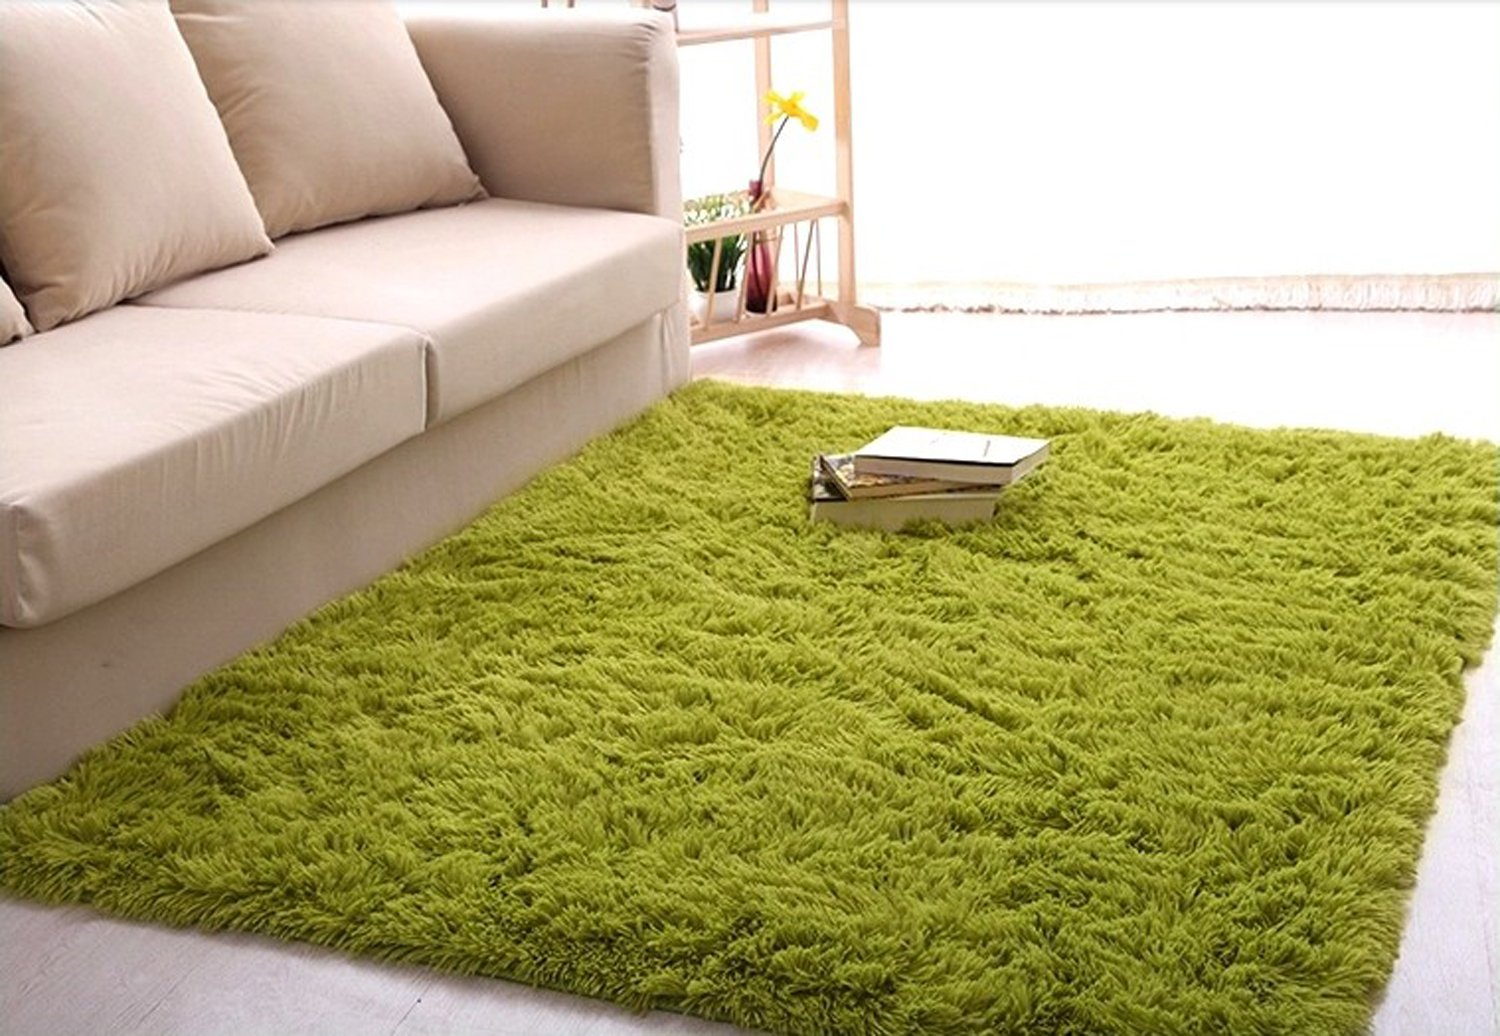 Ultra Soft 4.5 Cm Thick Indoor Morden Area Rugs Pads, New Arrival Fashion Color [Bedroom] [Livingroom] [Sitting-room] [Rugs] [Blanket] [Footcloth] for Home Decorate. Size: 4 Feet X 5 Feet (Grass green) Forever Lover